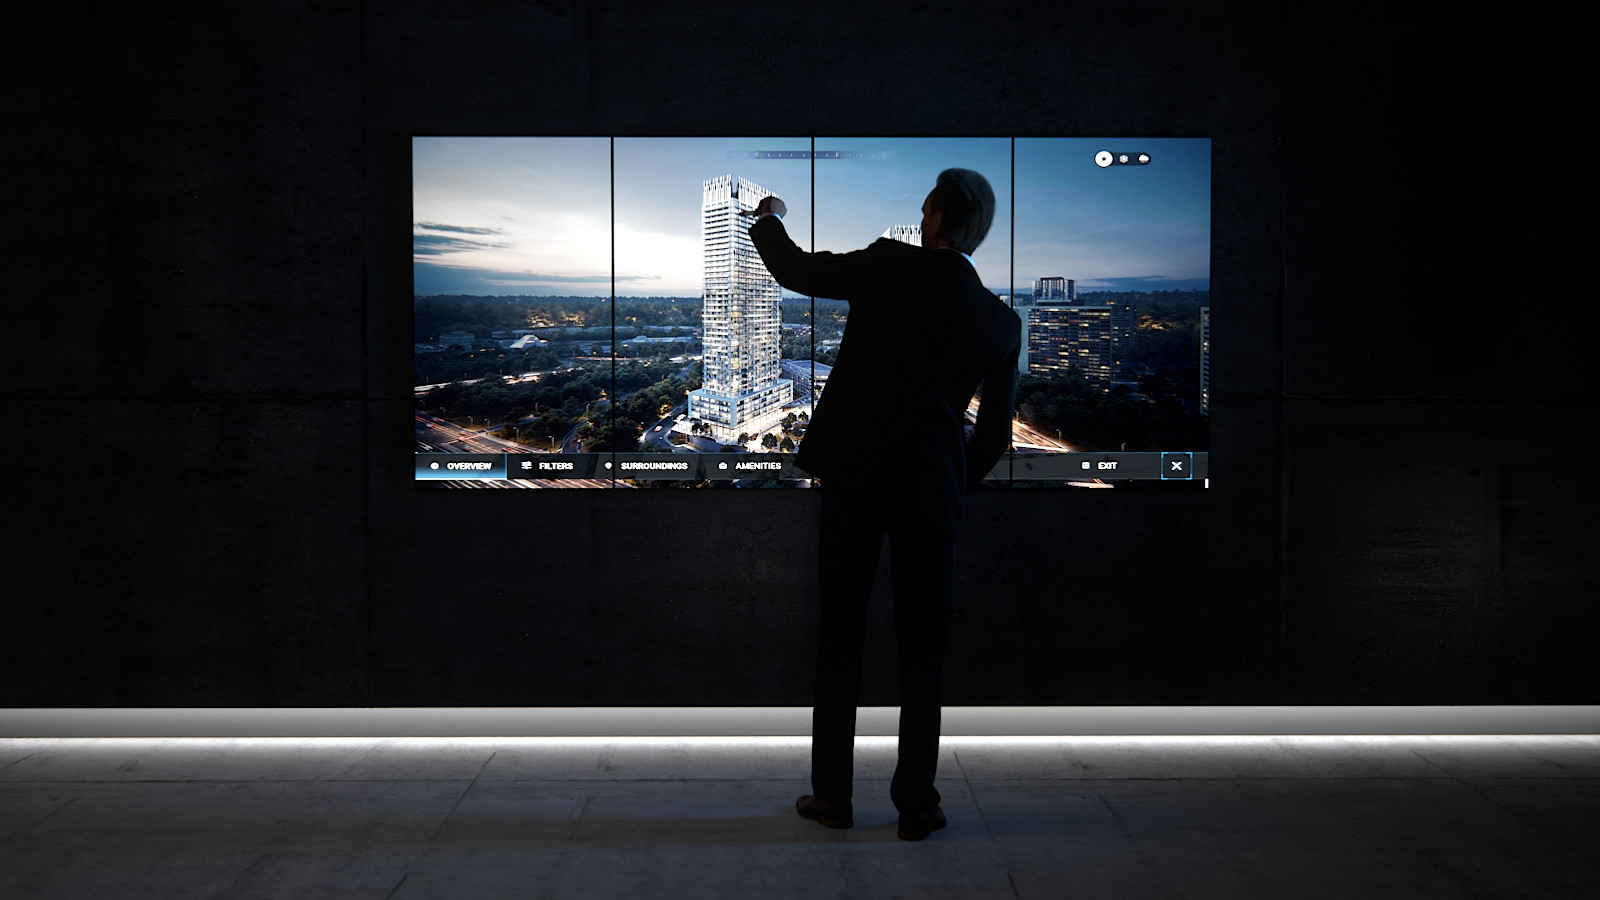 Man interacts with real estate presentation on a touch screen